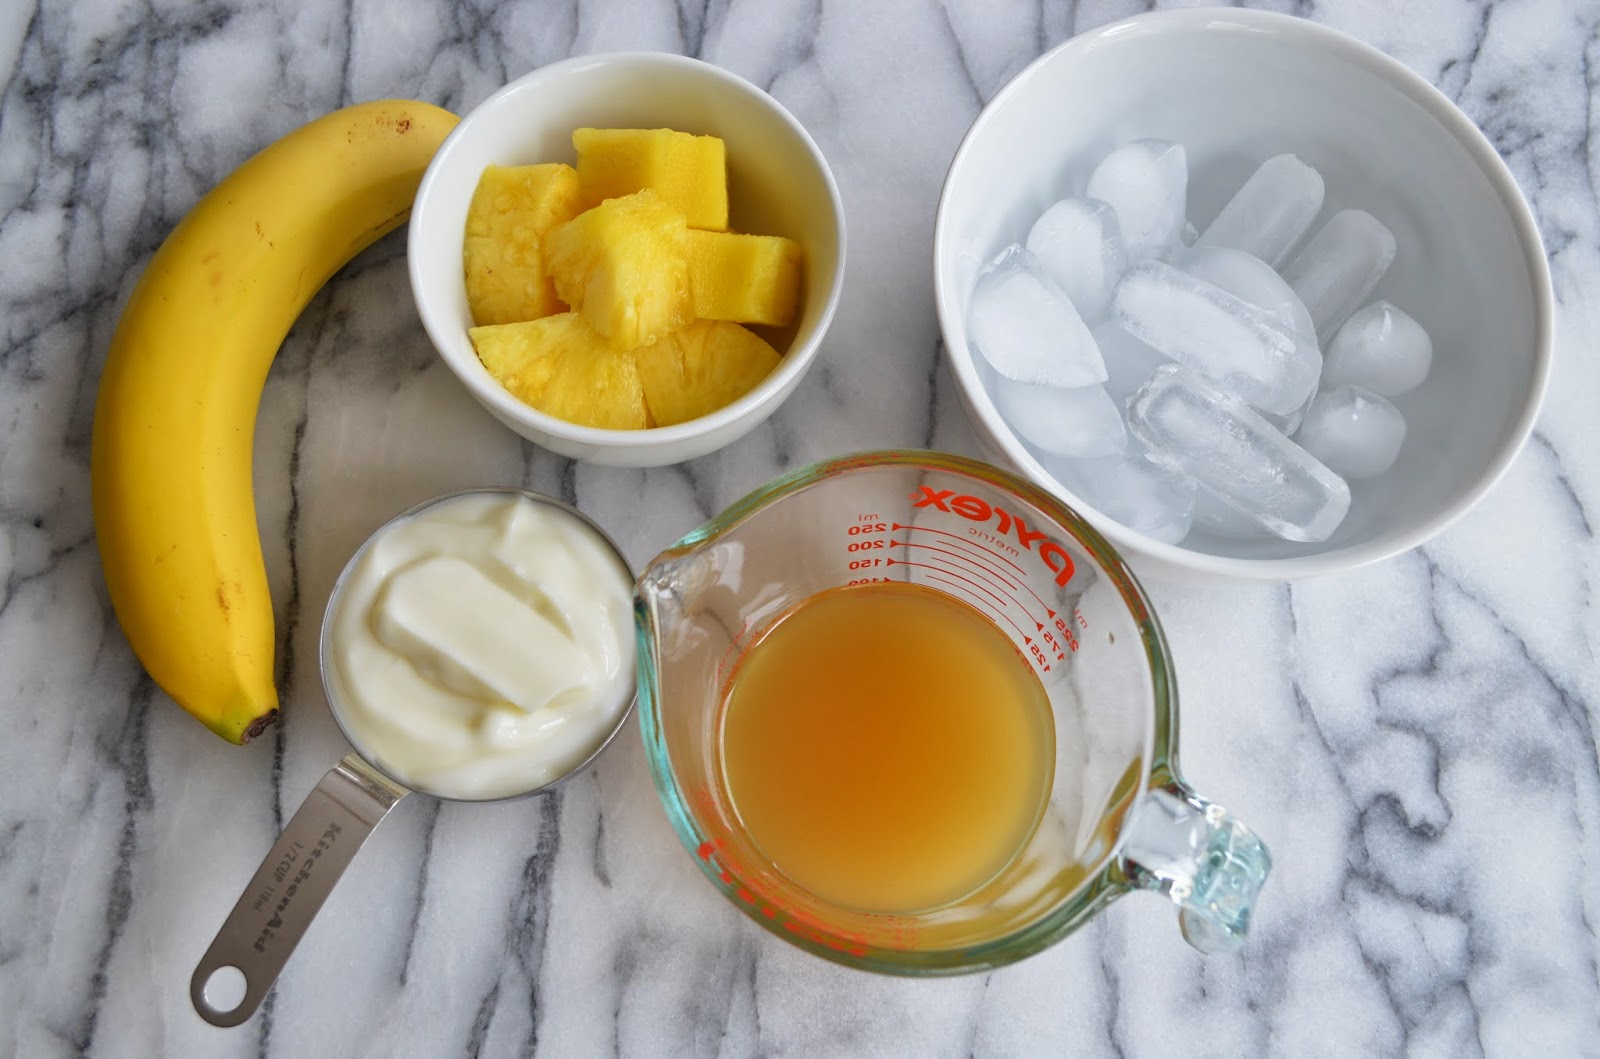 Ingredients for Banana Pineapple Smoothies - Smell of Rosemary